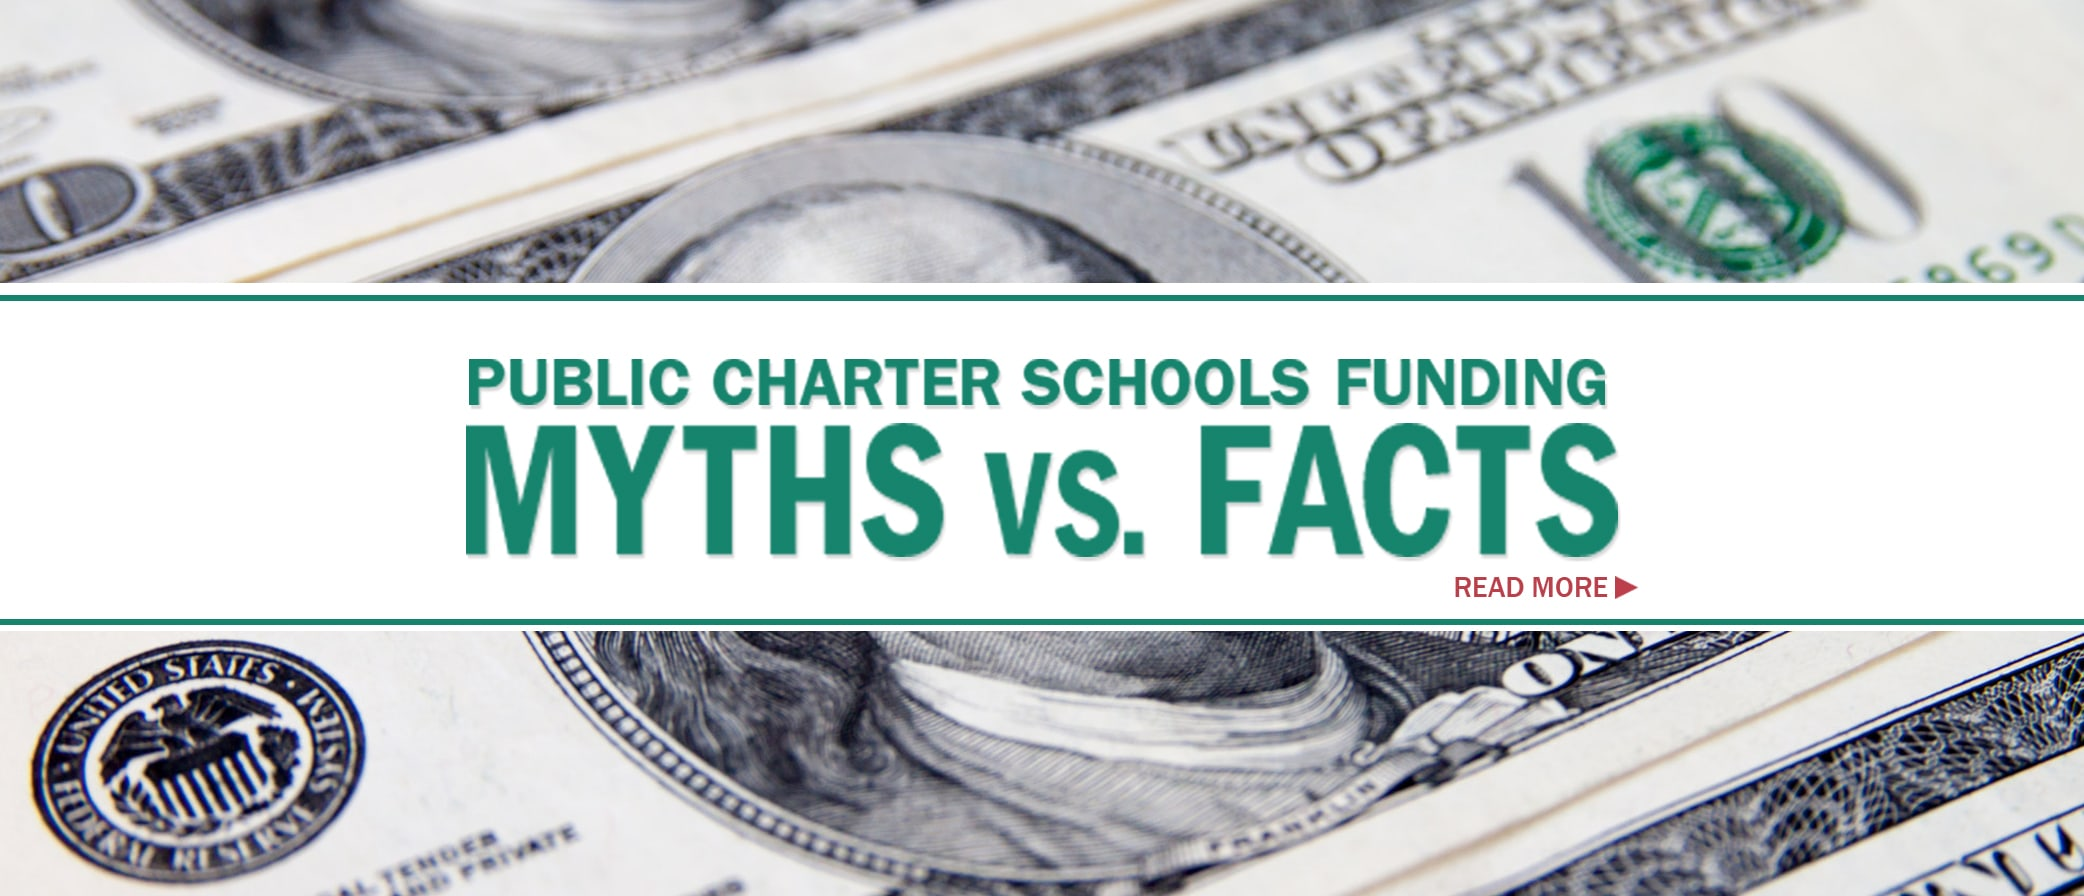 00845-Funding-Facts_Myths-public-site-banner_v1cb